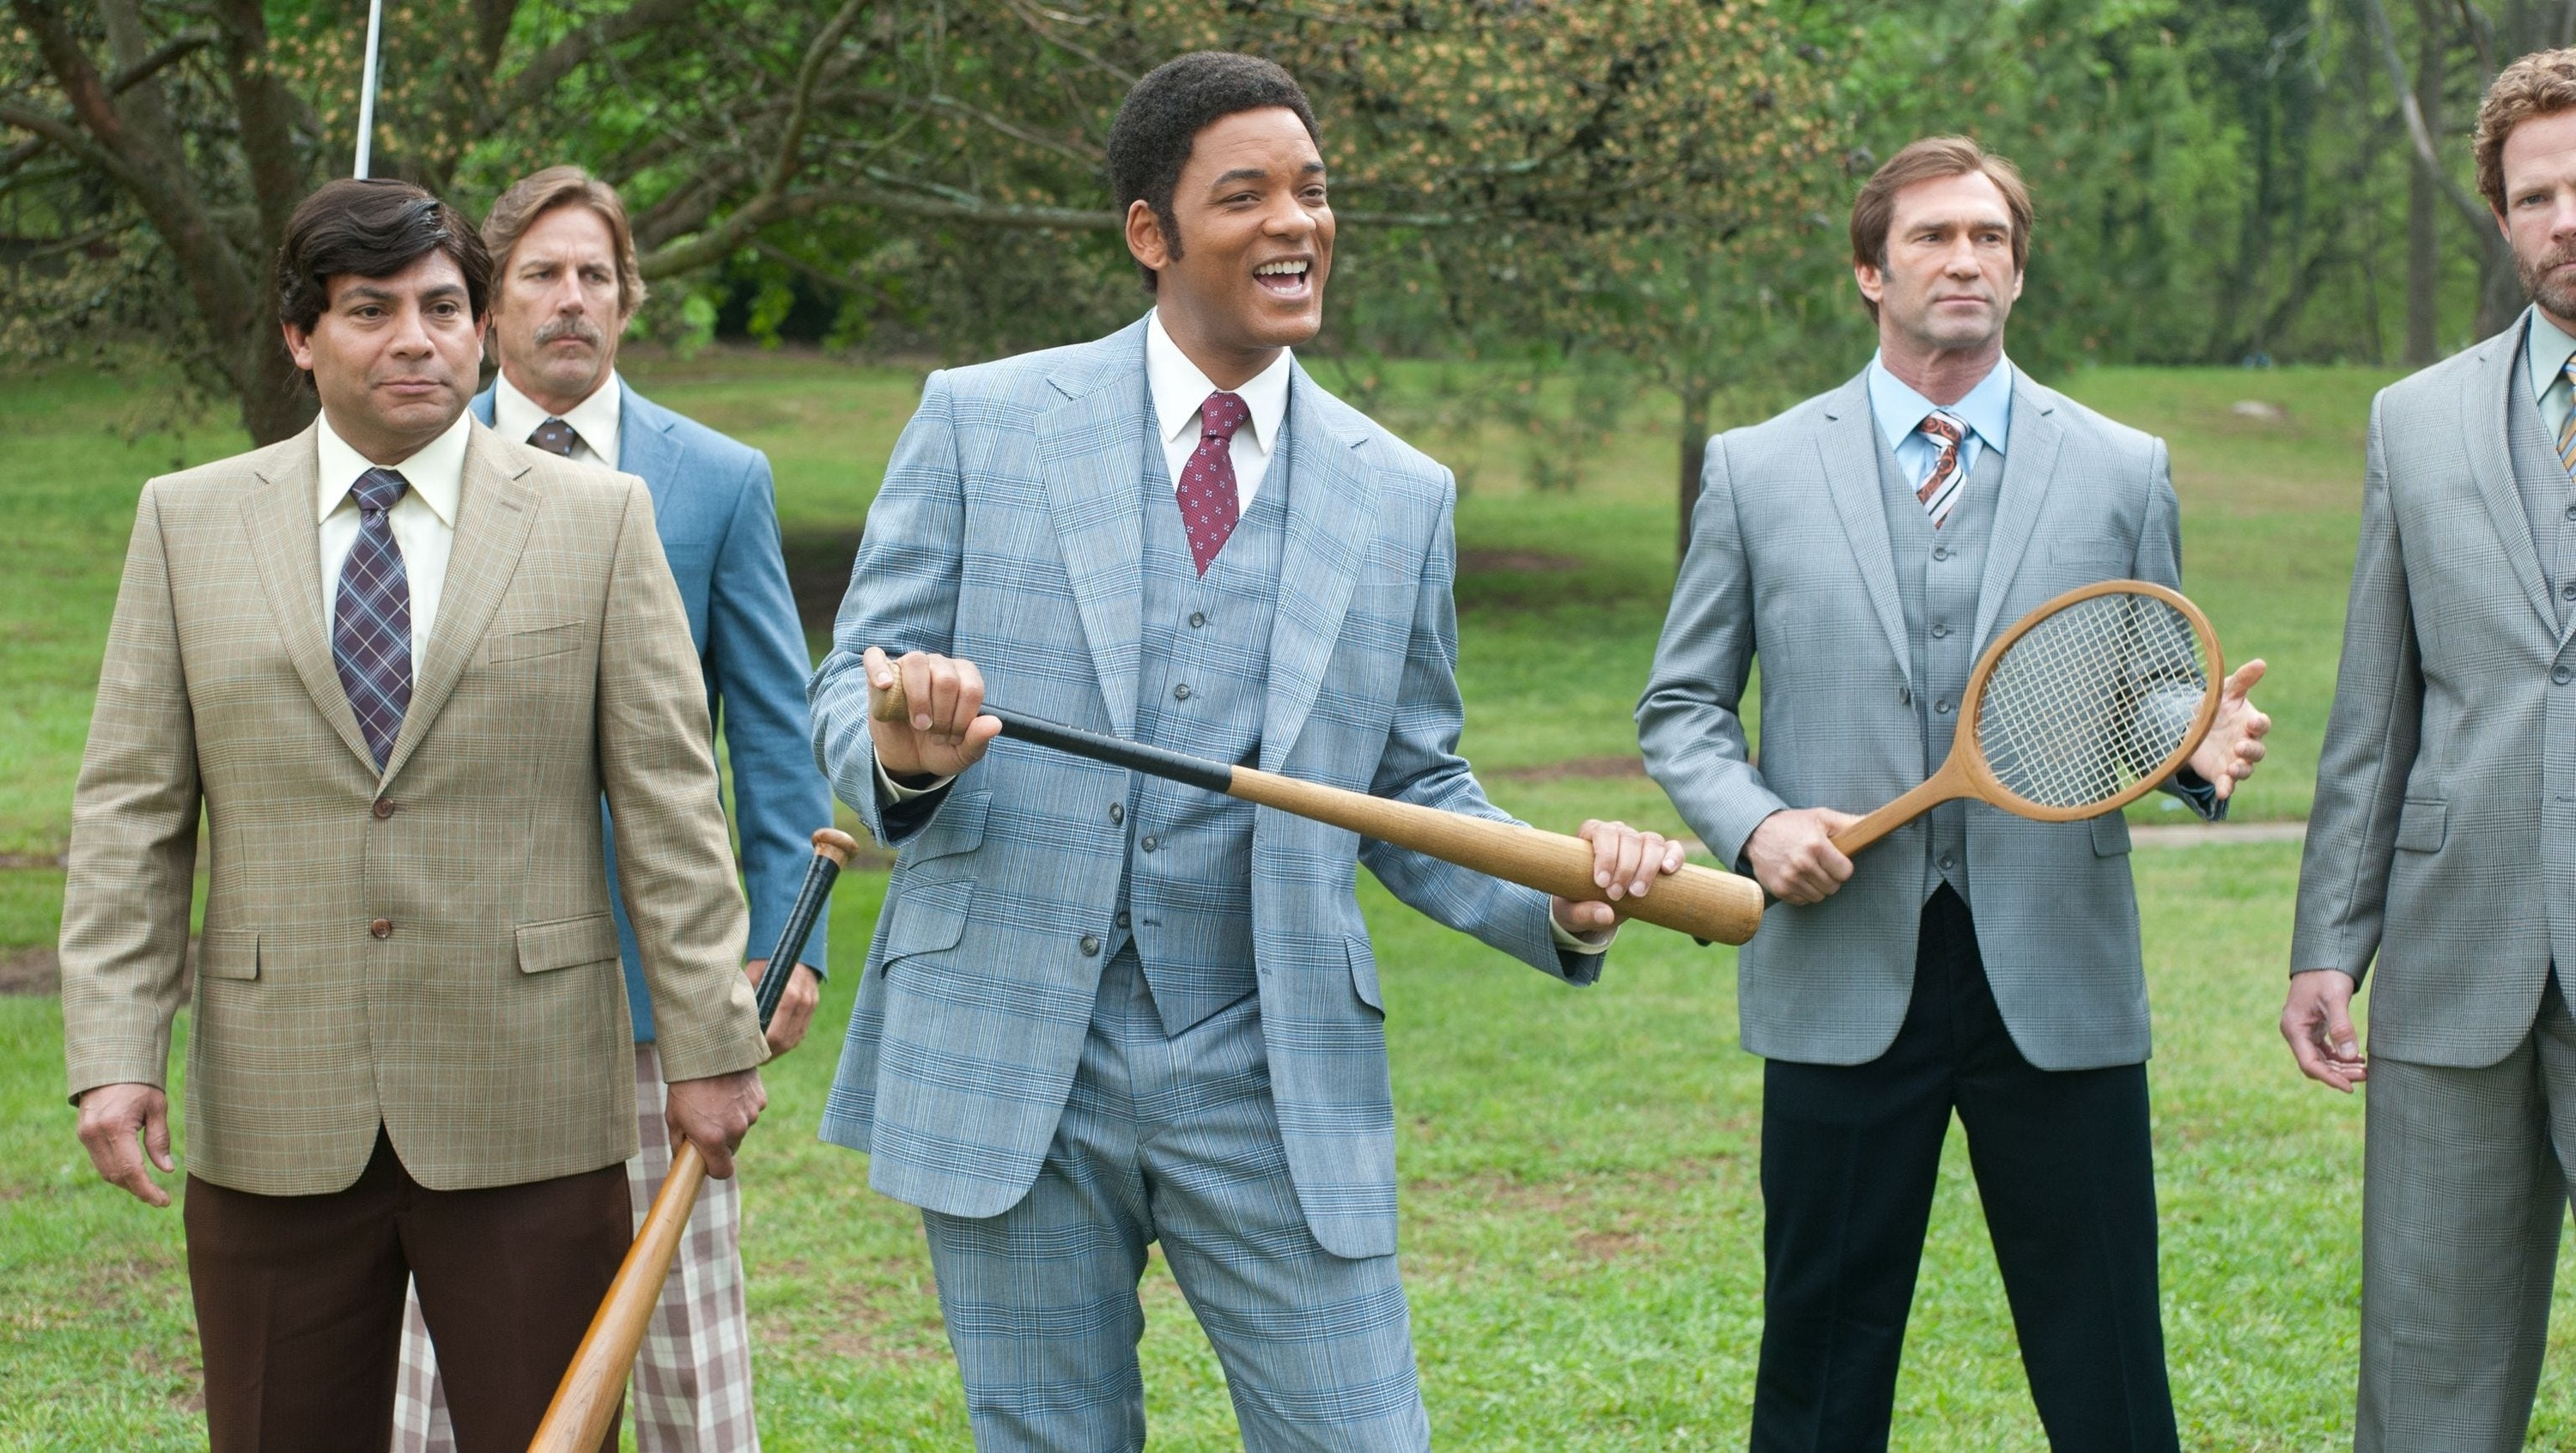 Will Smith holds a baseball bat as an anchorman ready to rumble with other anchors